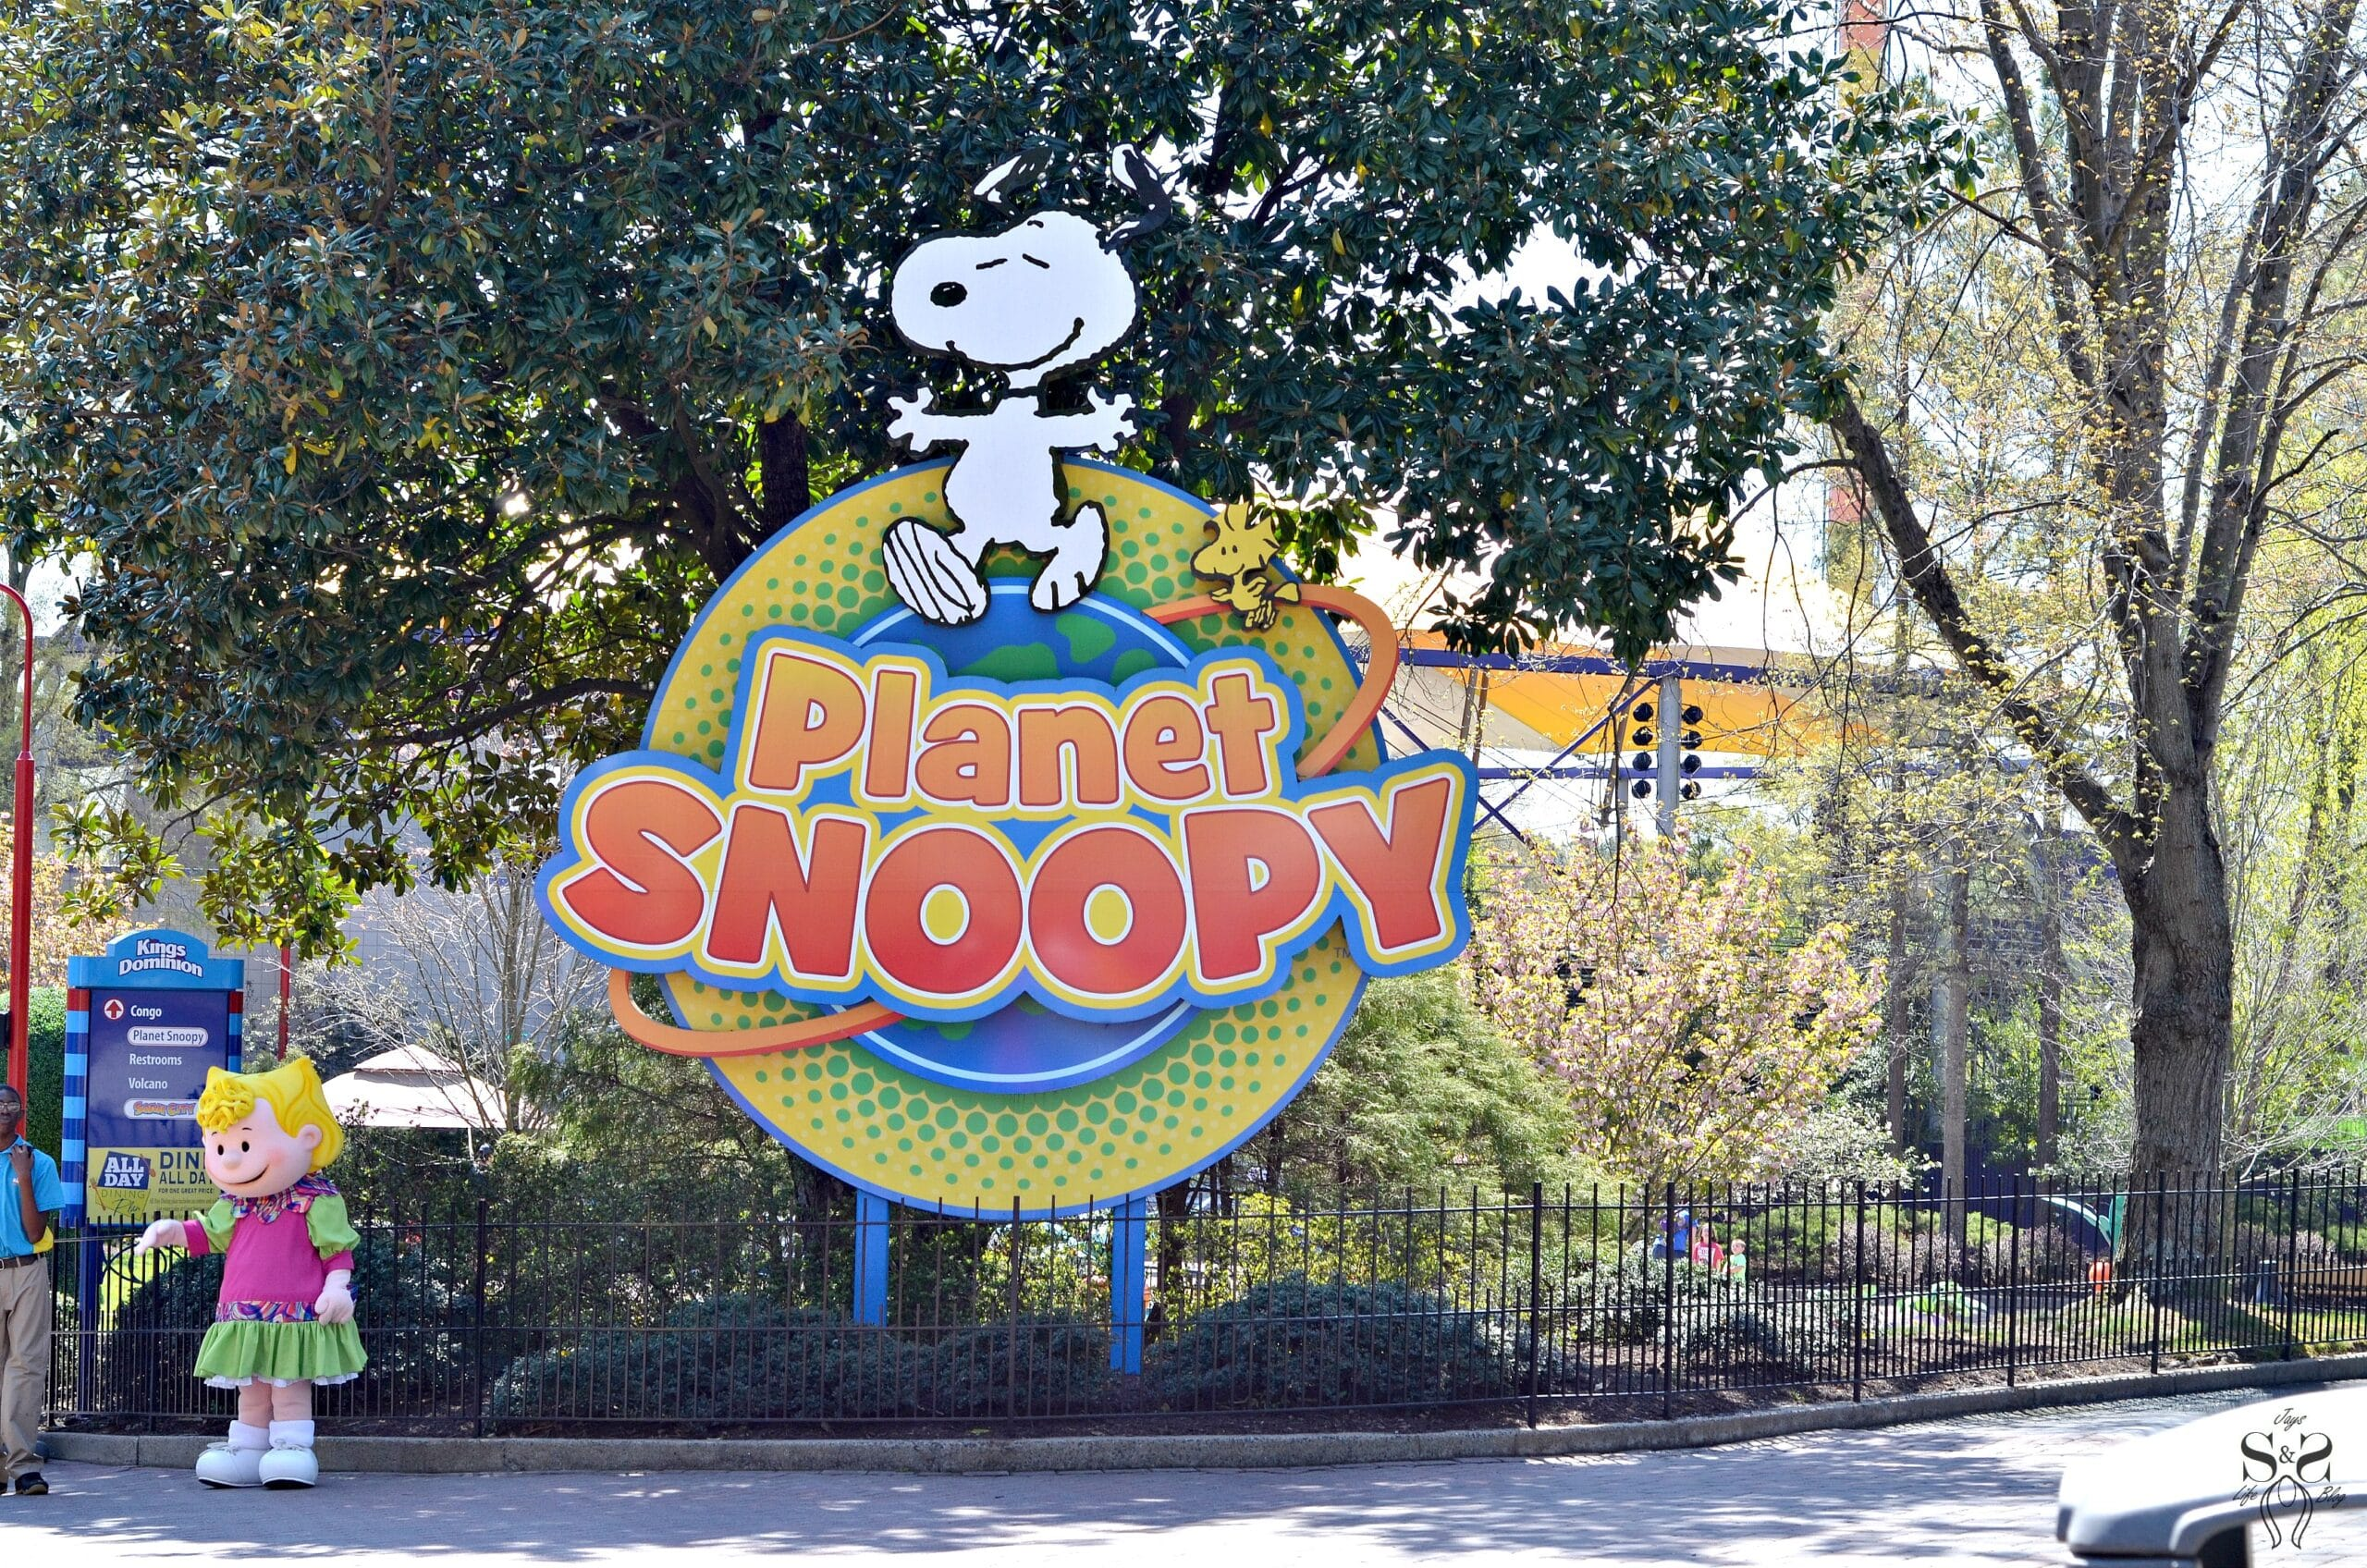 We will be Visiting Kings Dominion and Sharing My Kid's Point of View